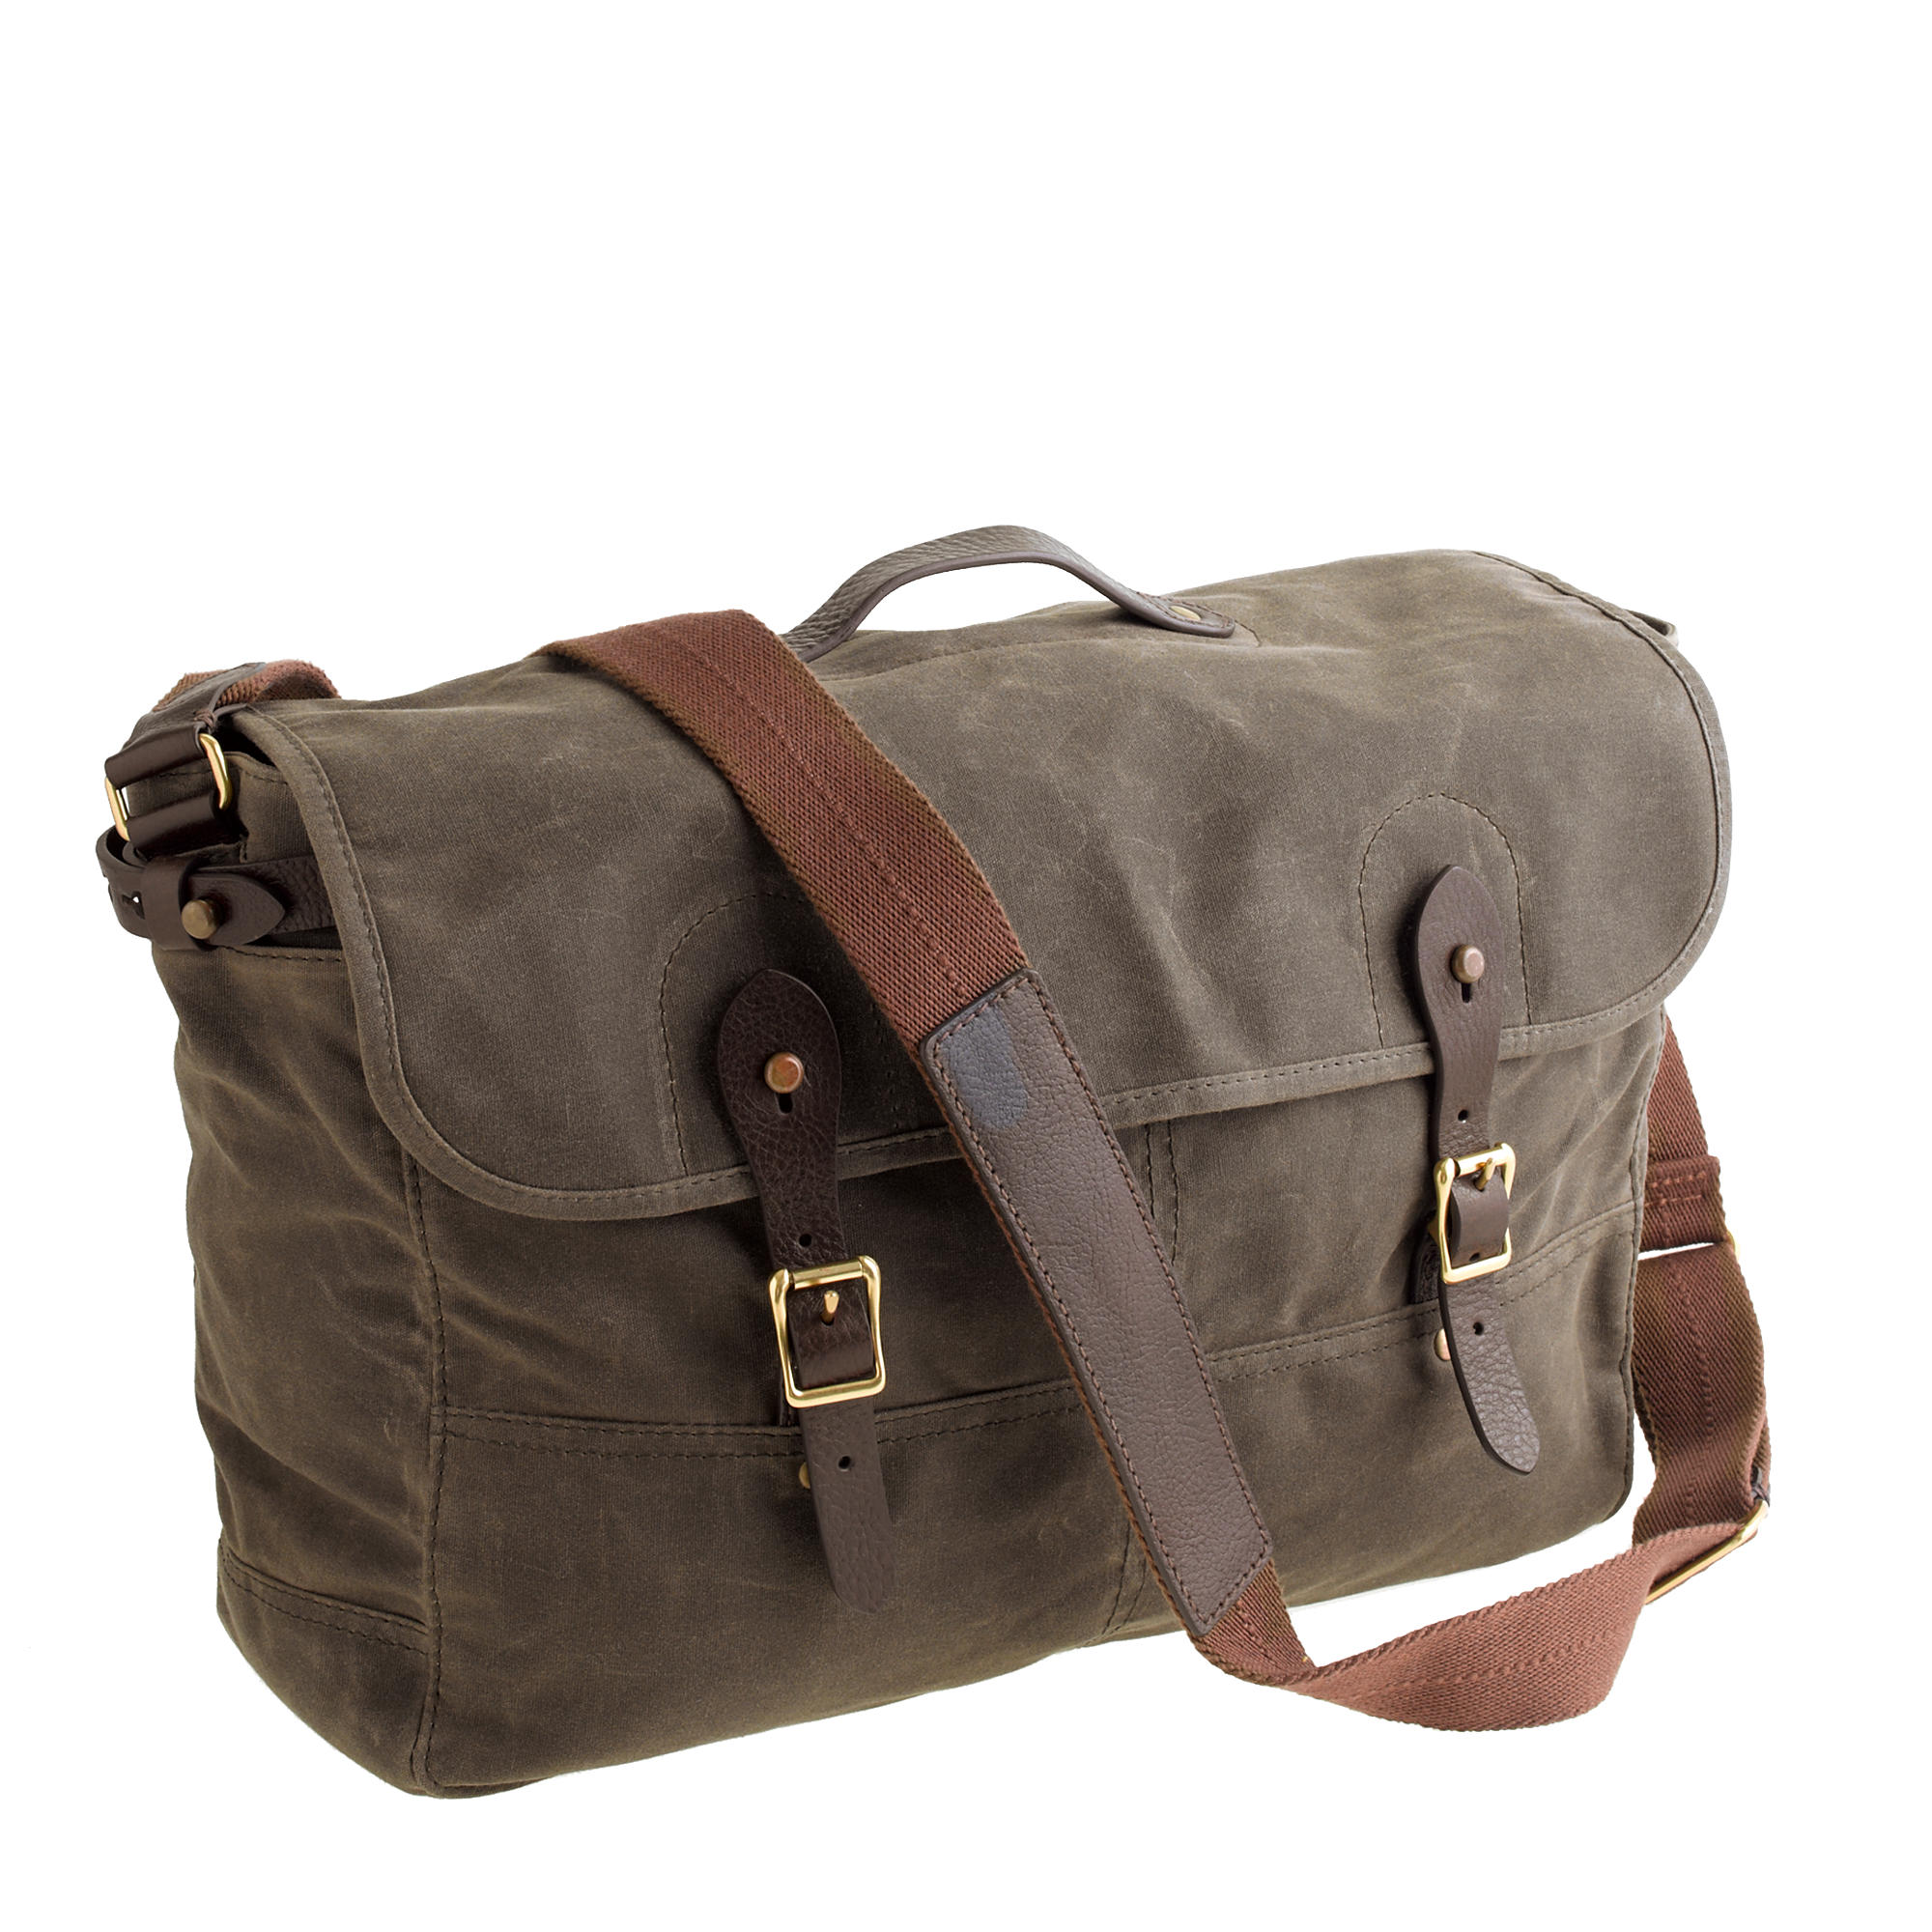 Abingdon messenger bag : Men bags | J.Crew